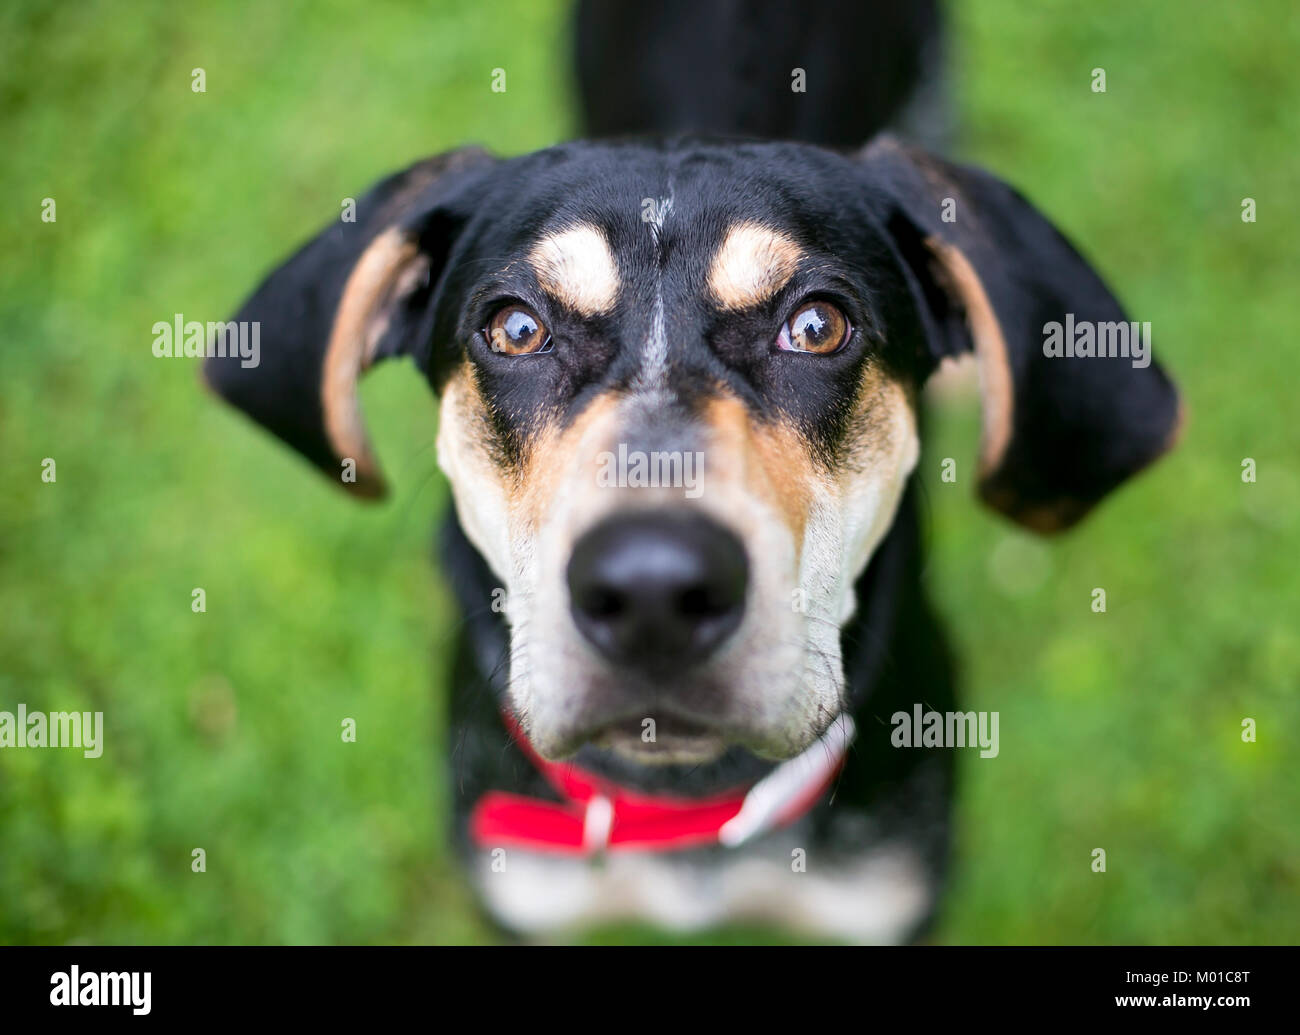 Close up of a black and tan Hound mixed breed dog with floppy ears - Stock Image